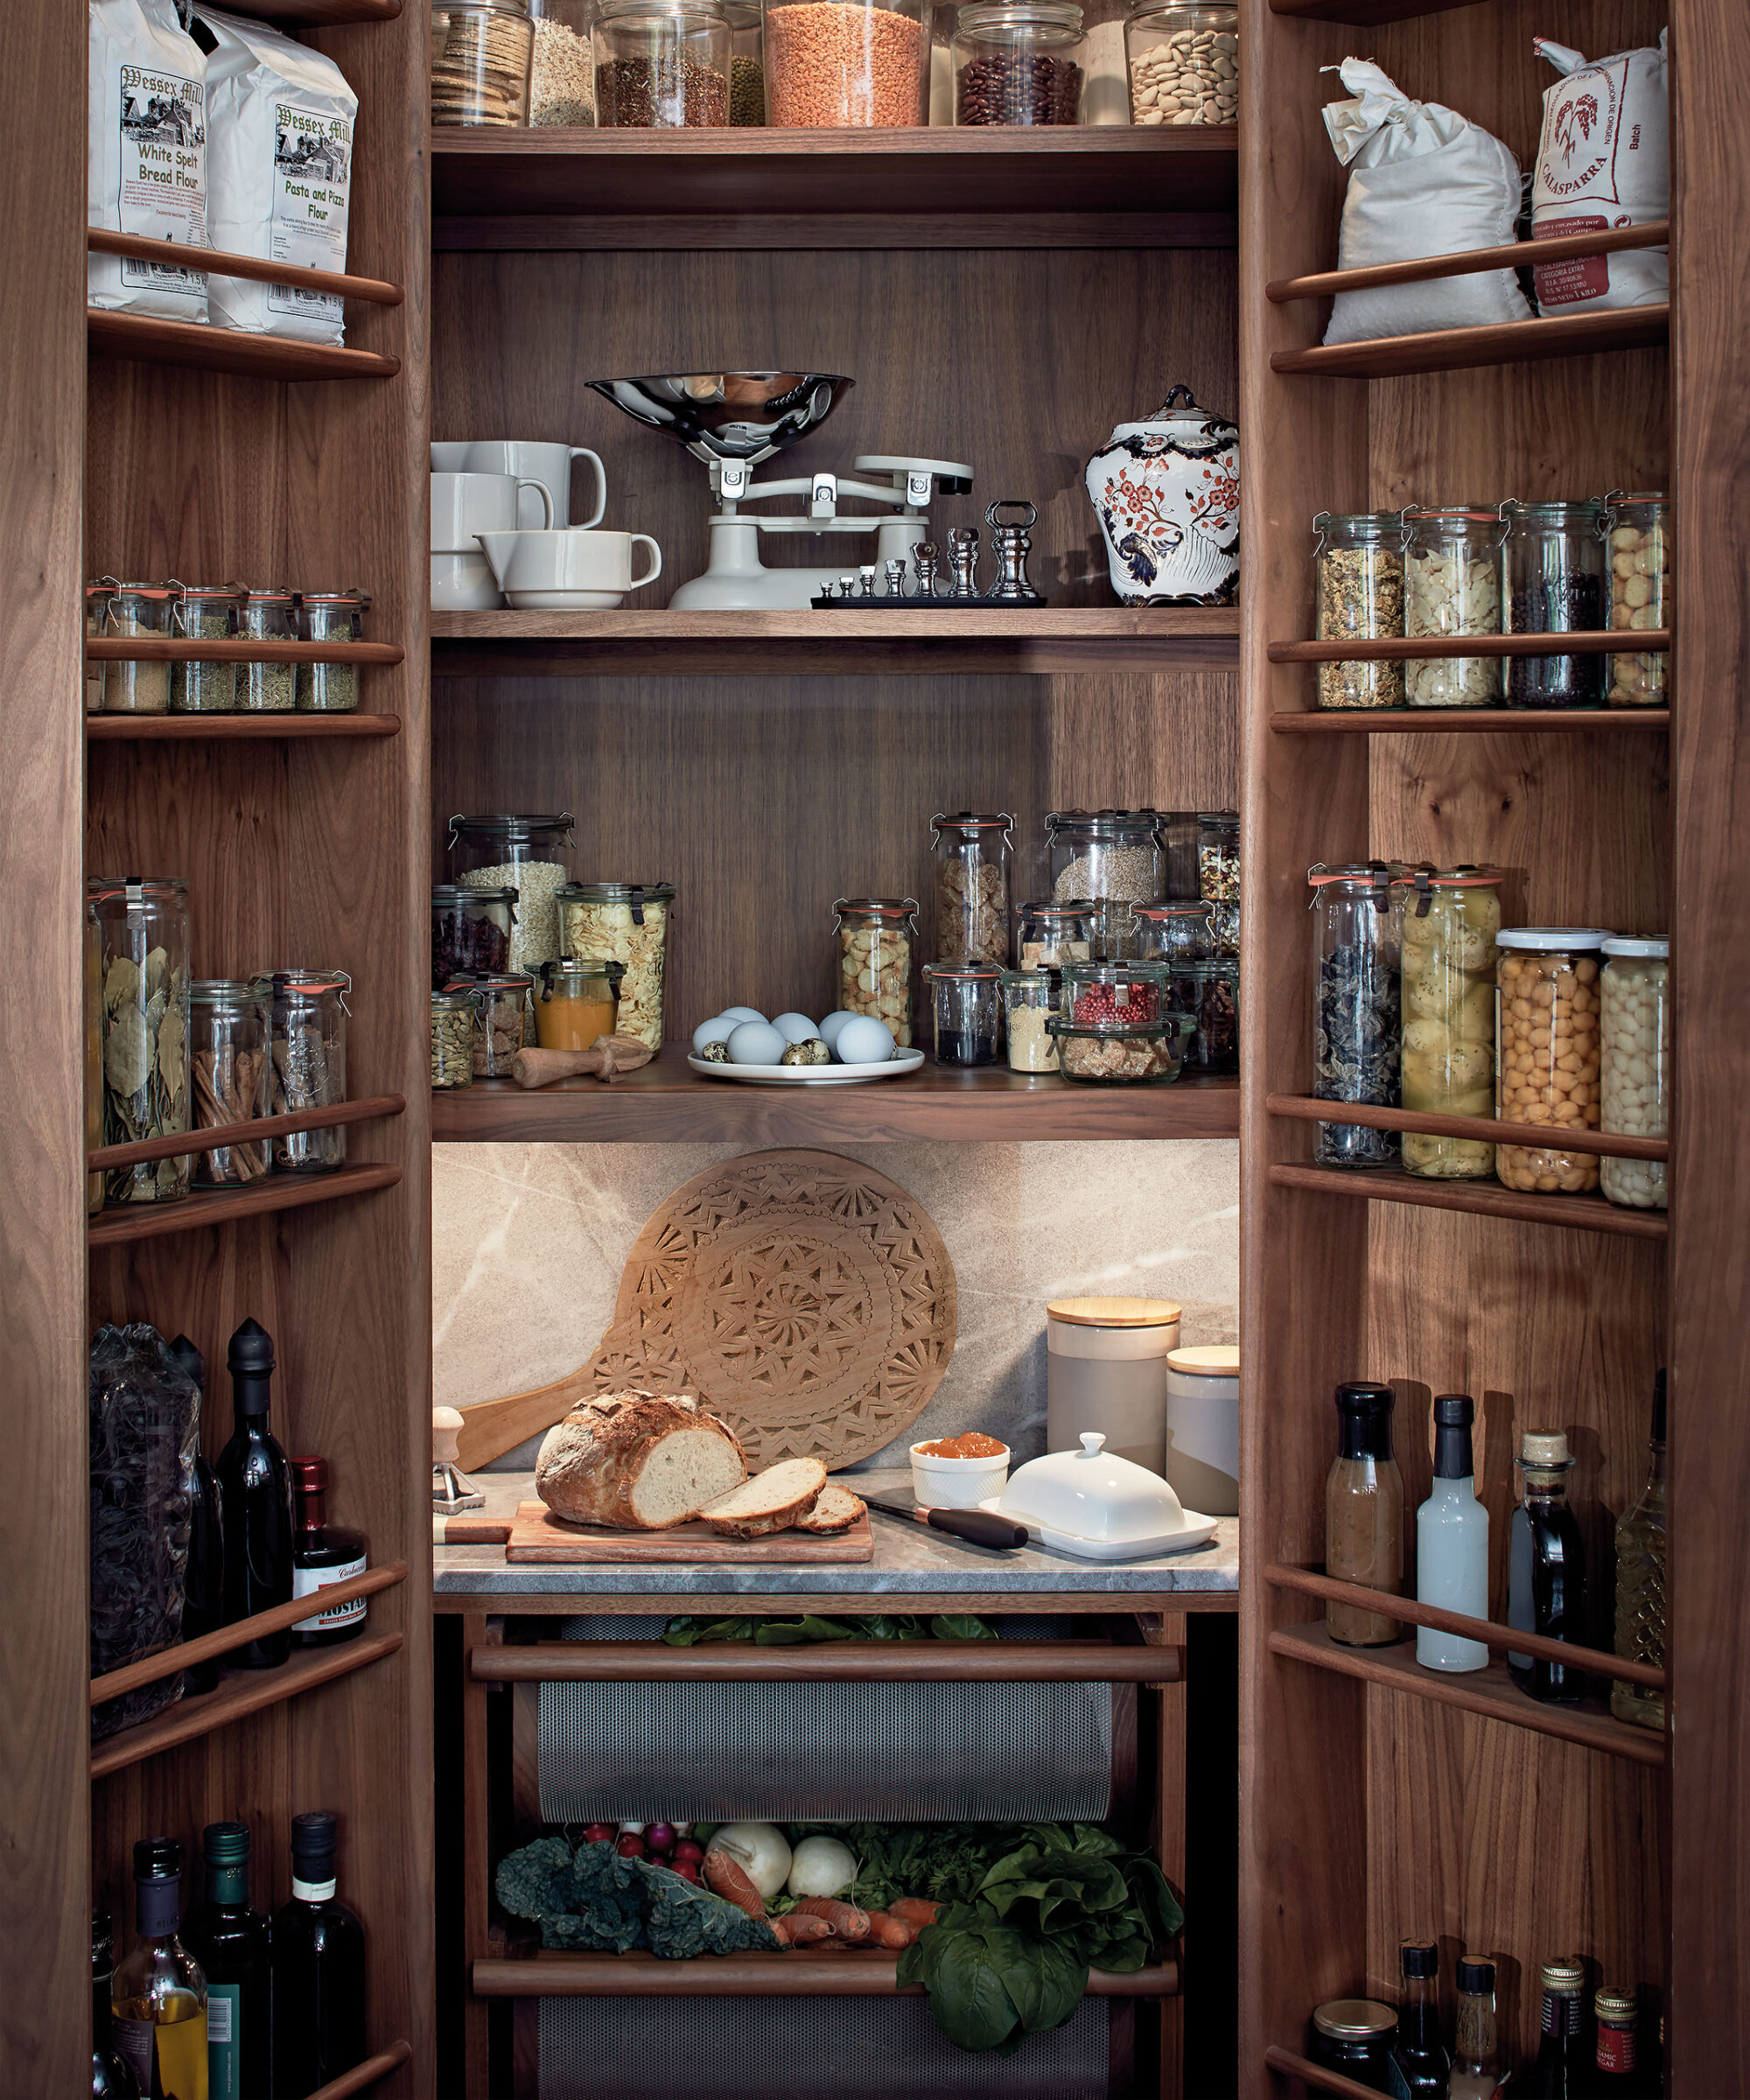 an open Smallbone larder with spice racks bottle racks and shelving